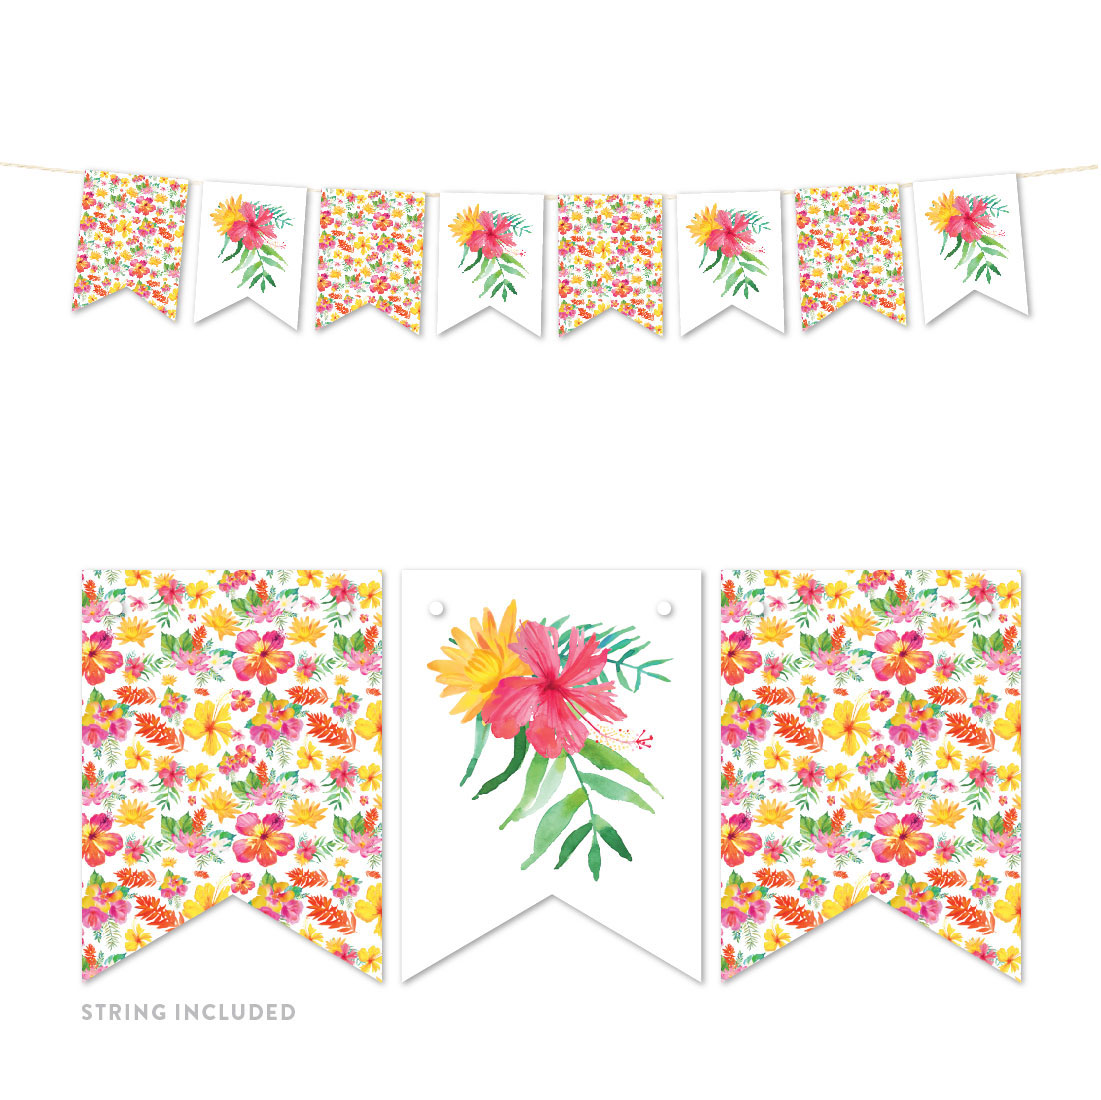 Tropical Floral Garden Party Wedding, Hanging Pennant Party Banner with String, Graphics Only